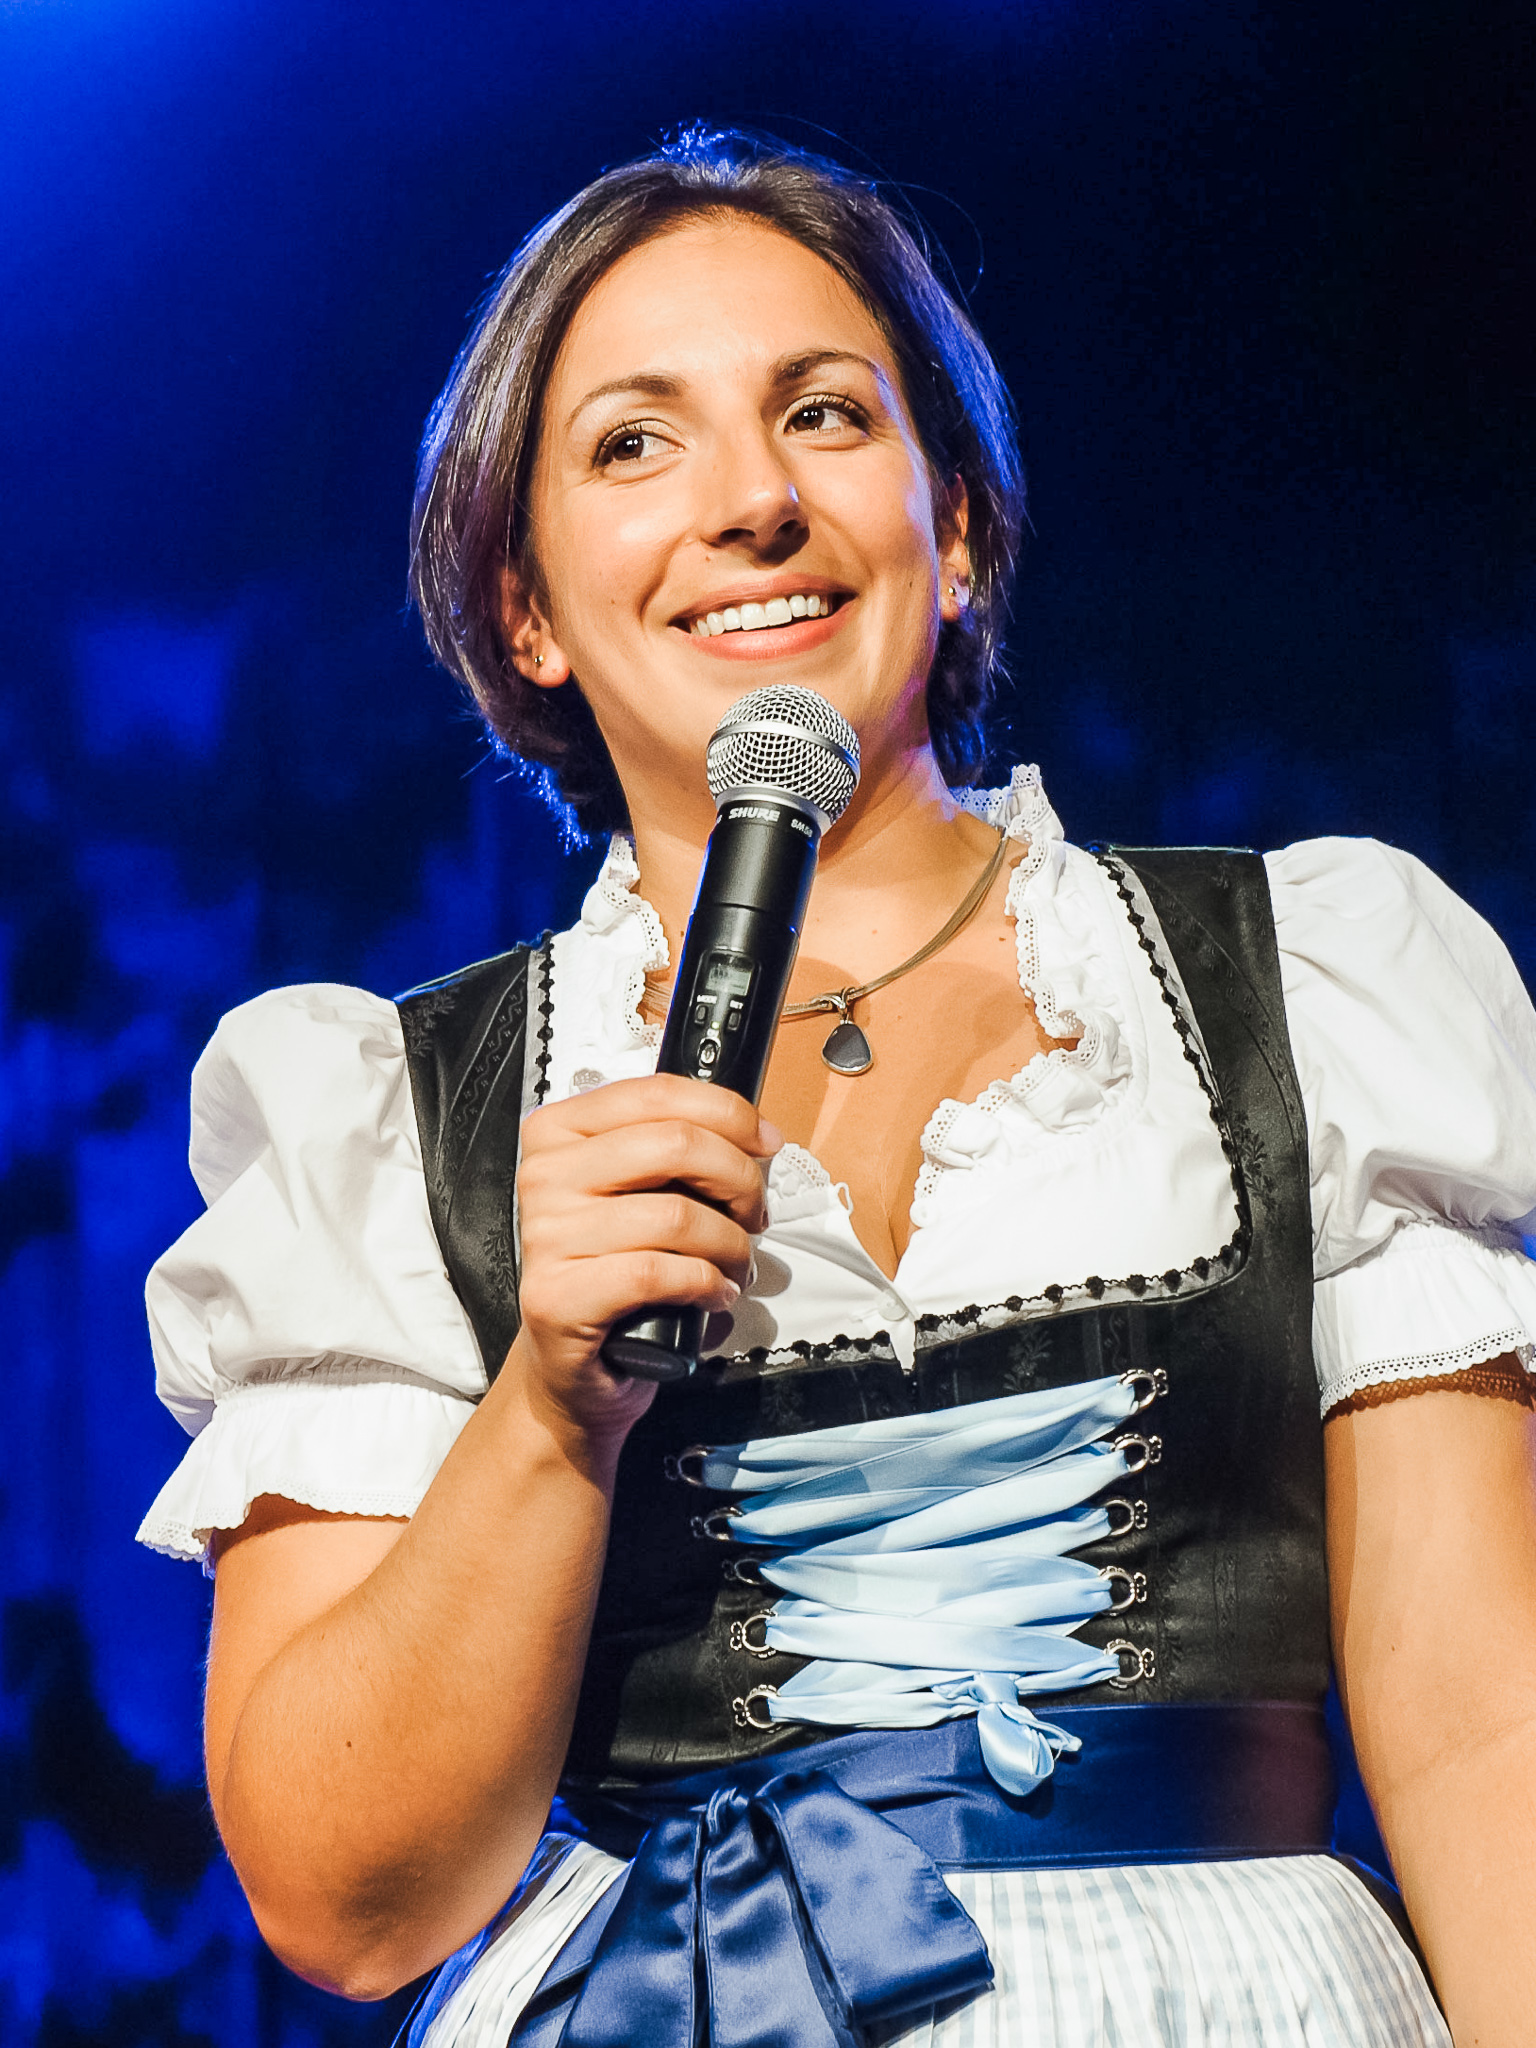 Karina Schwarzenböck on stage in Bavaria